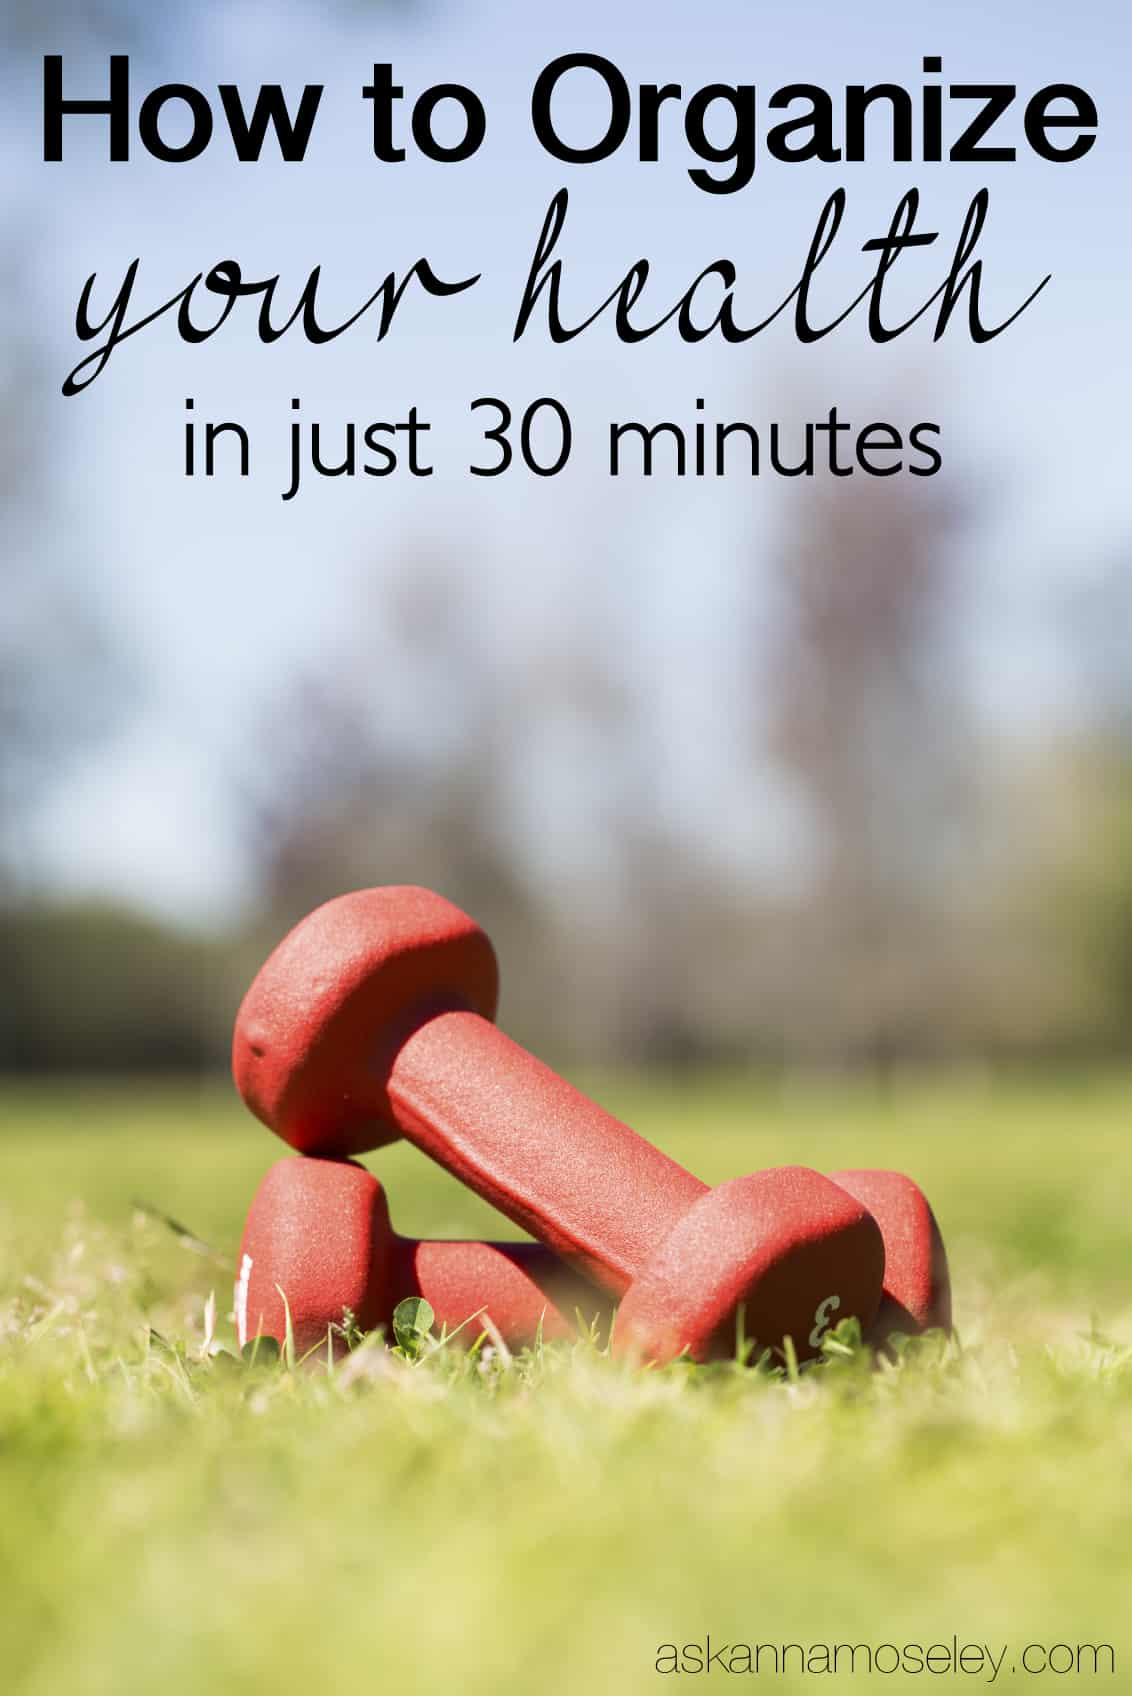 How to organize your health in 30 minutes, and change your life forever   Ask Anna